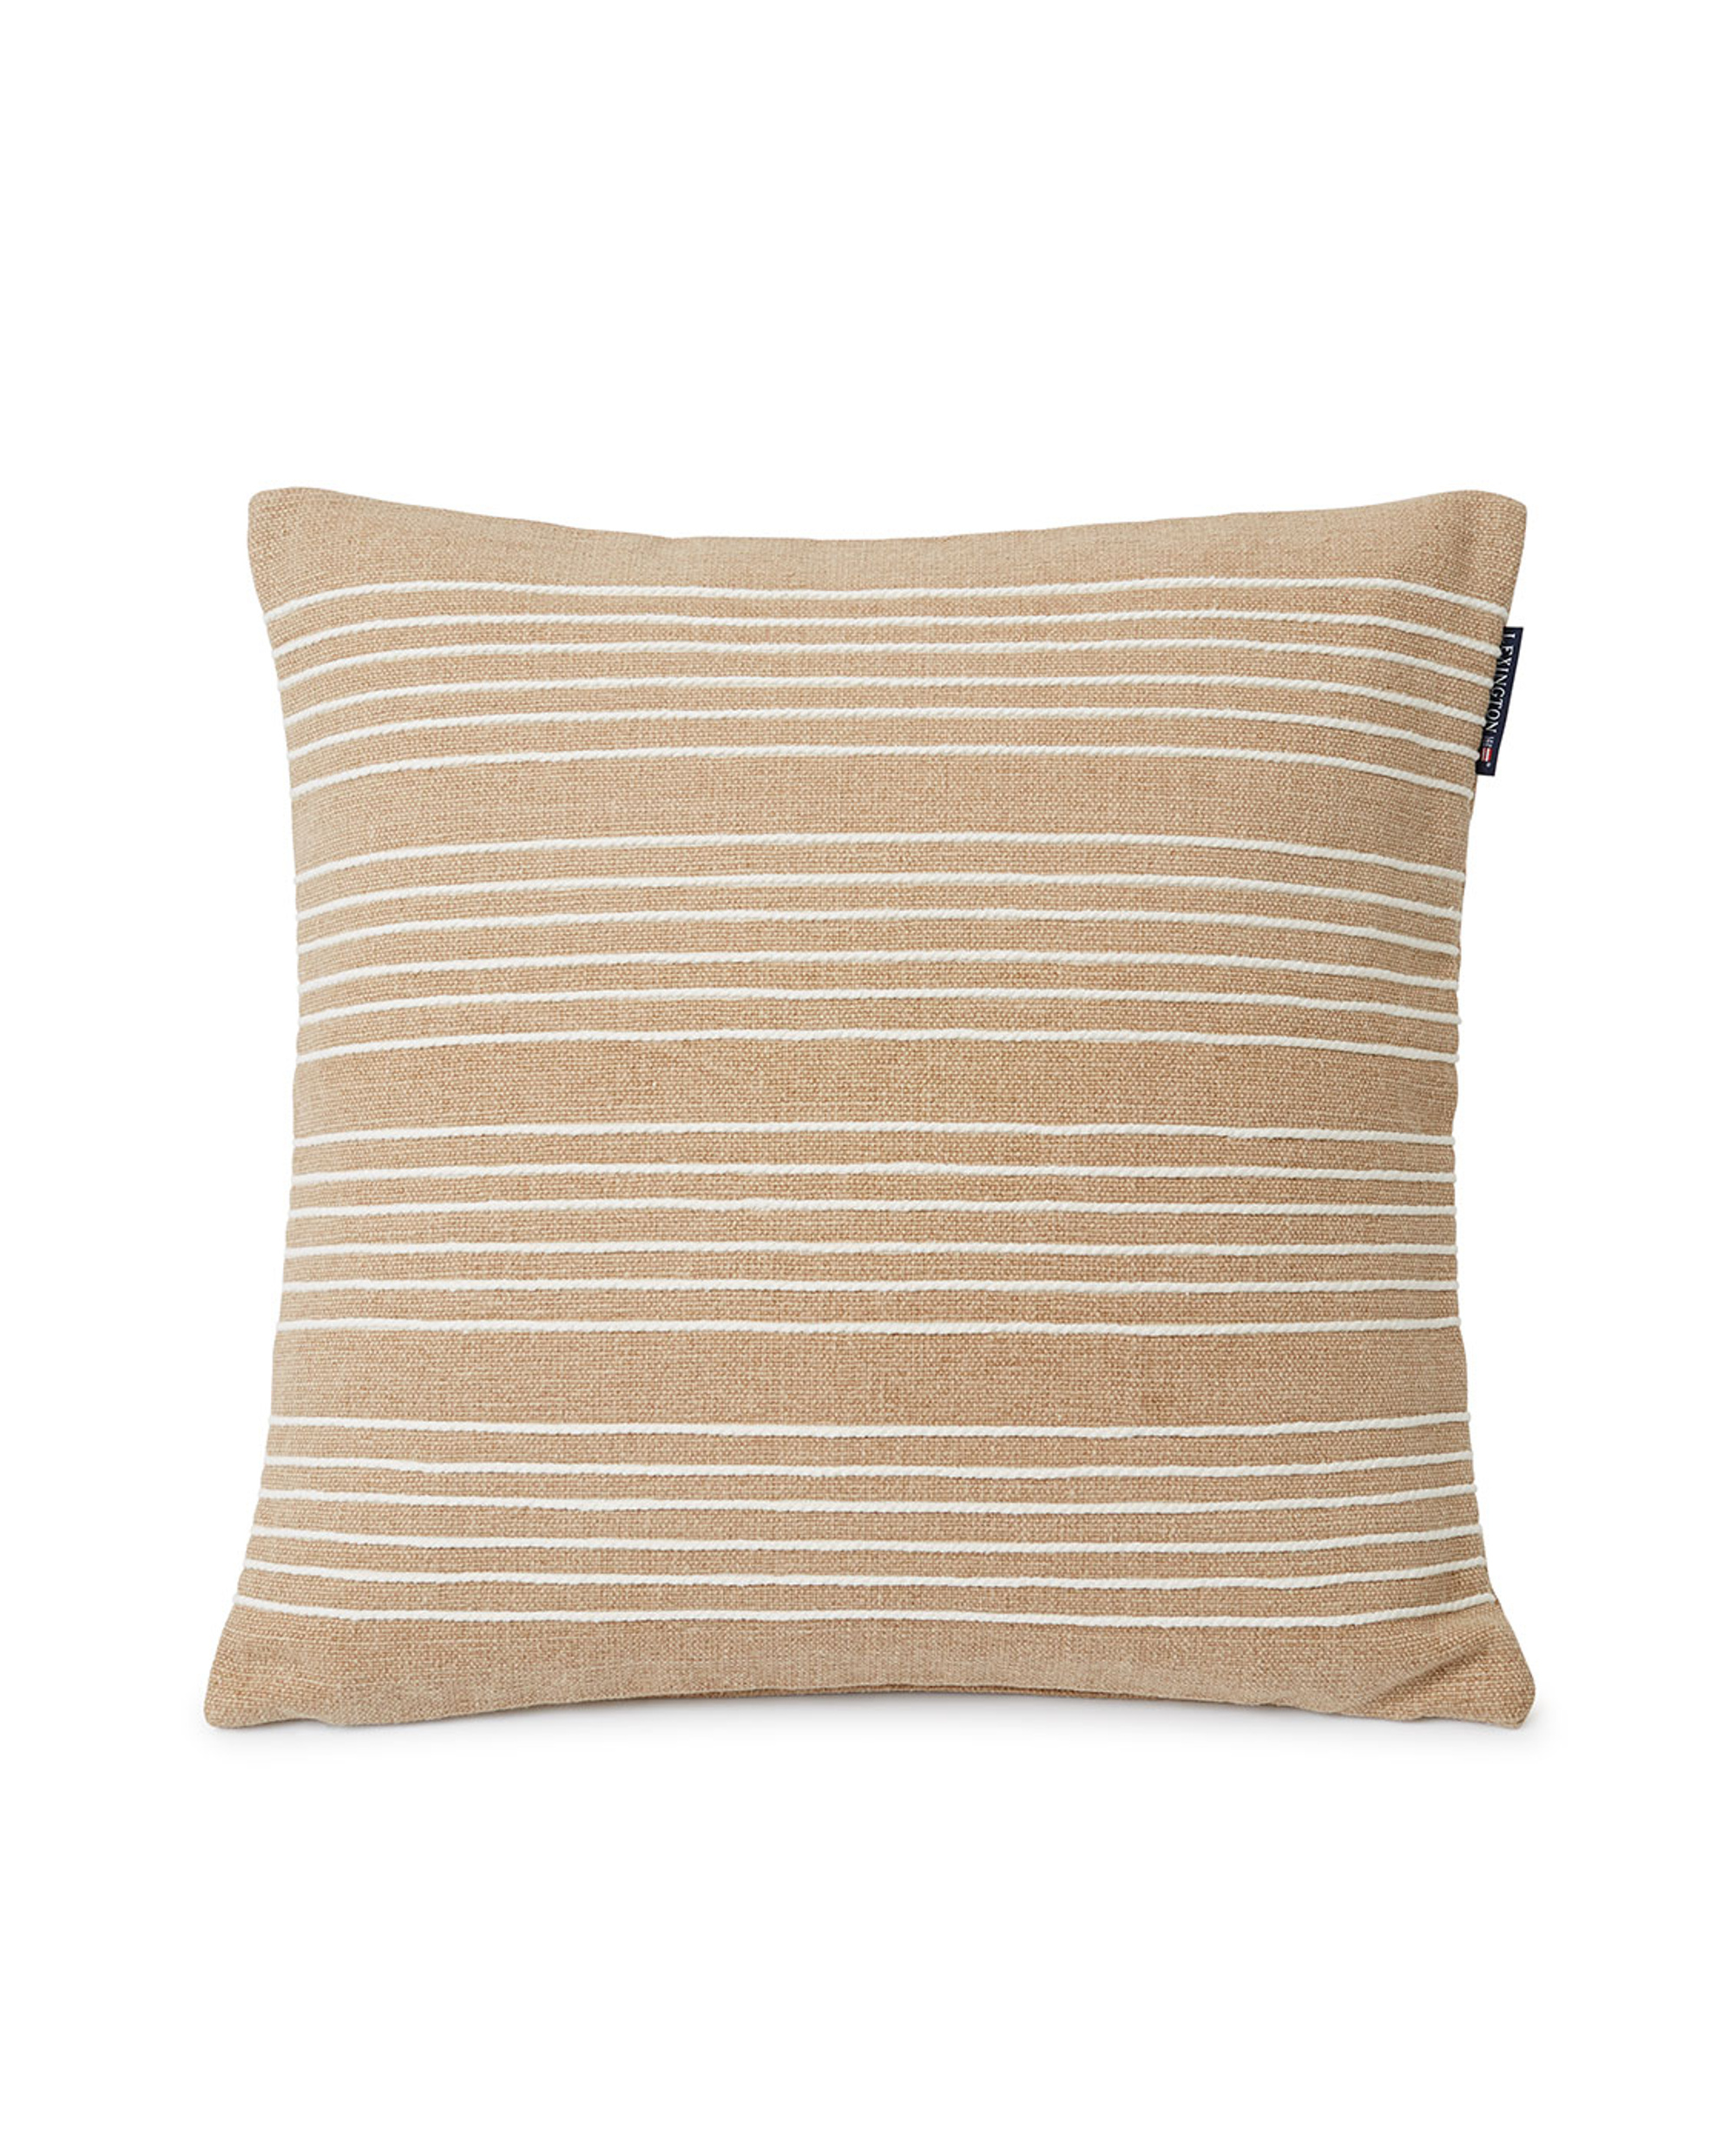 Structure Stripes Recycl Cott Canvas Pillow Cover, Beige/White